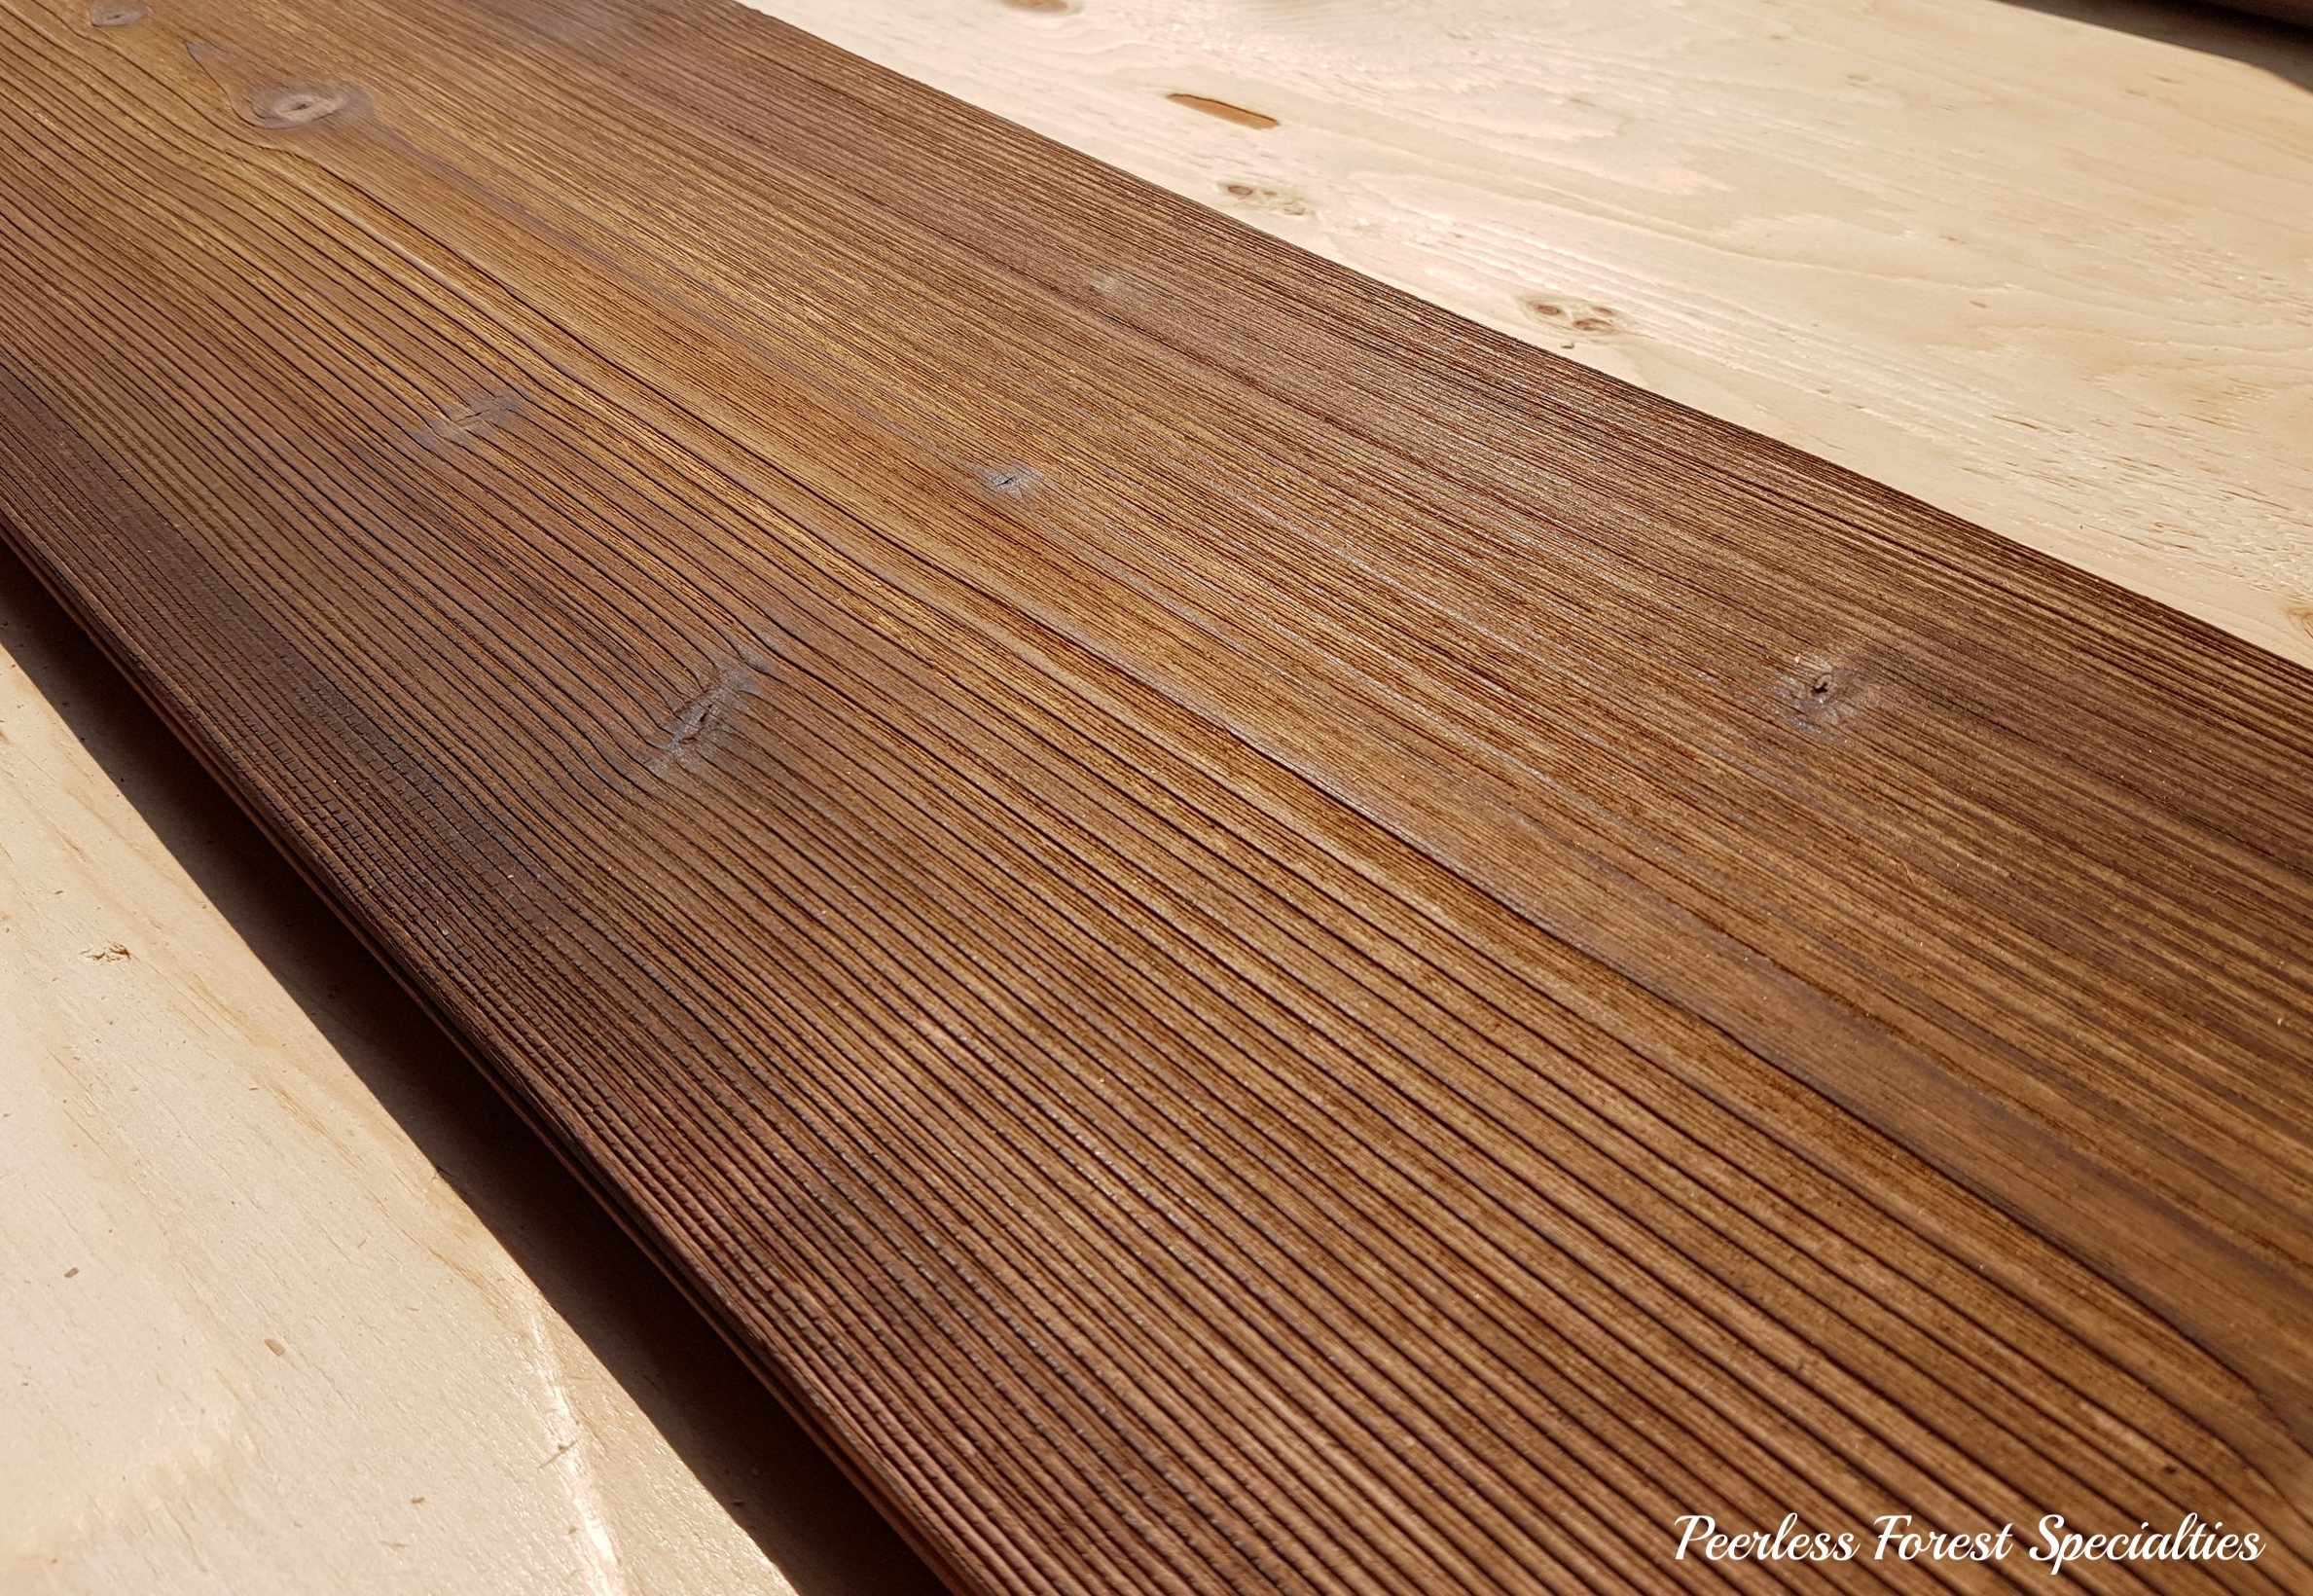 Wide Plank Fir Flooring Heavy Burn & Brushed with raised grain feel.